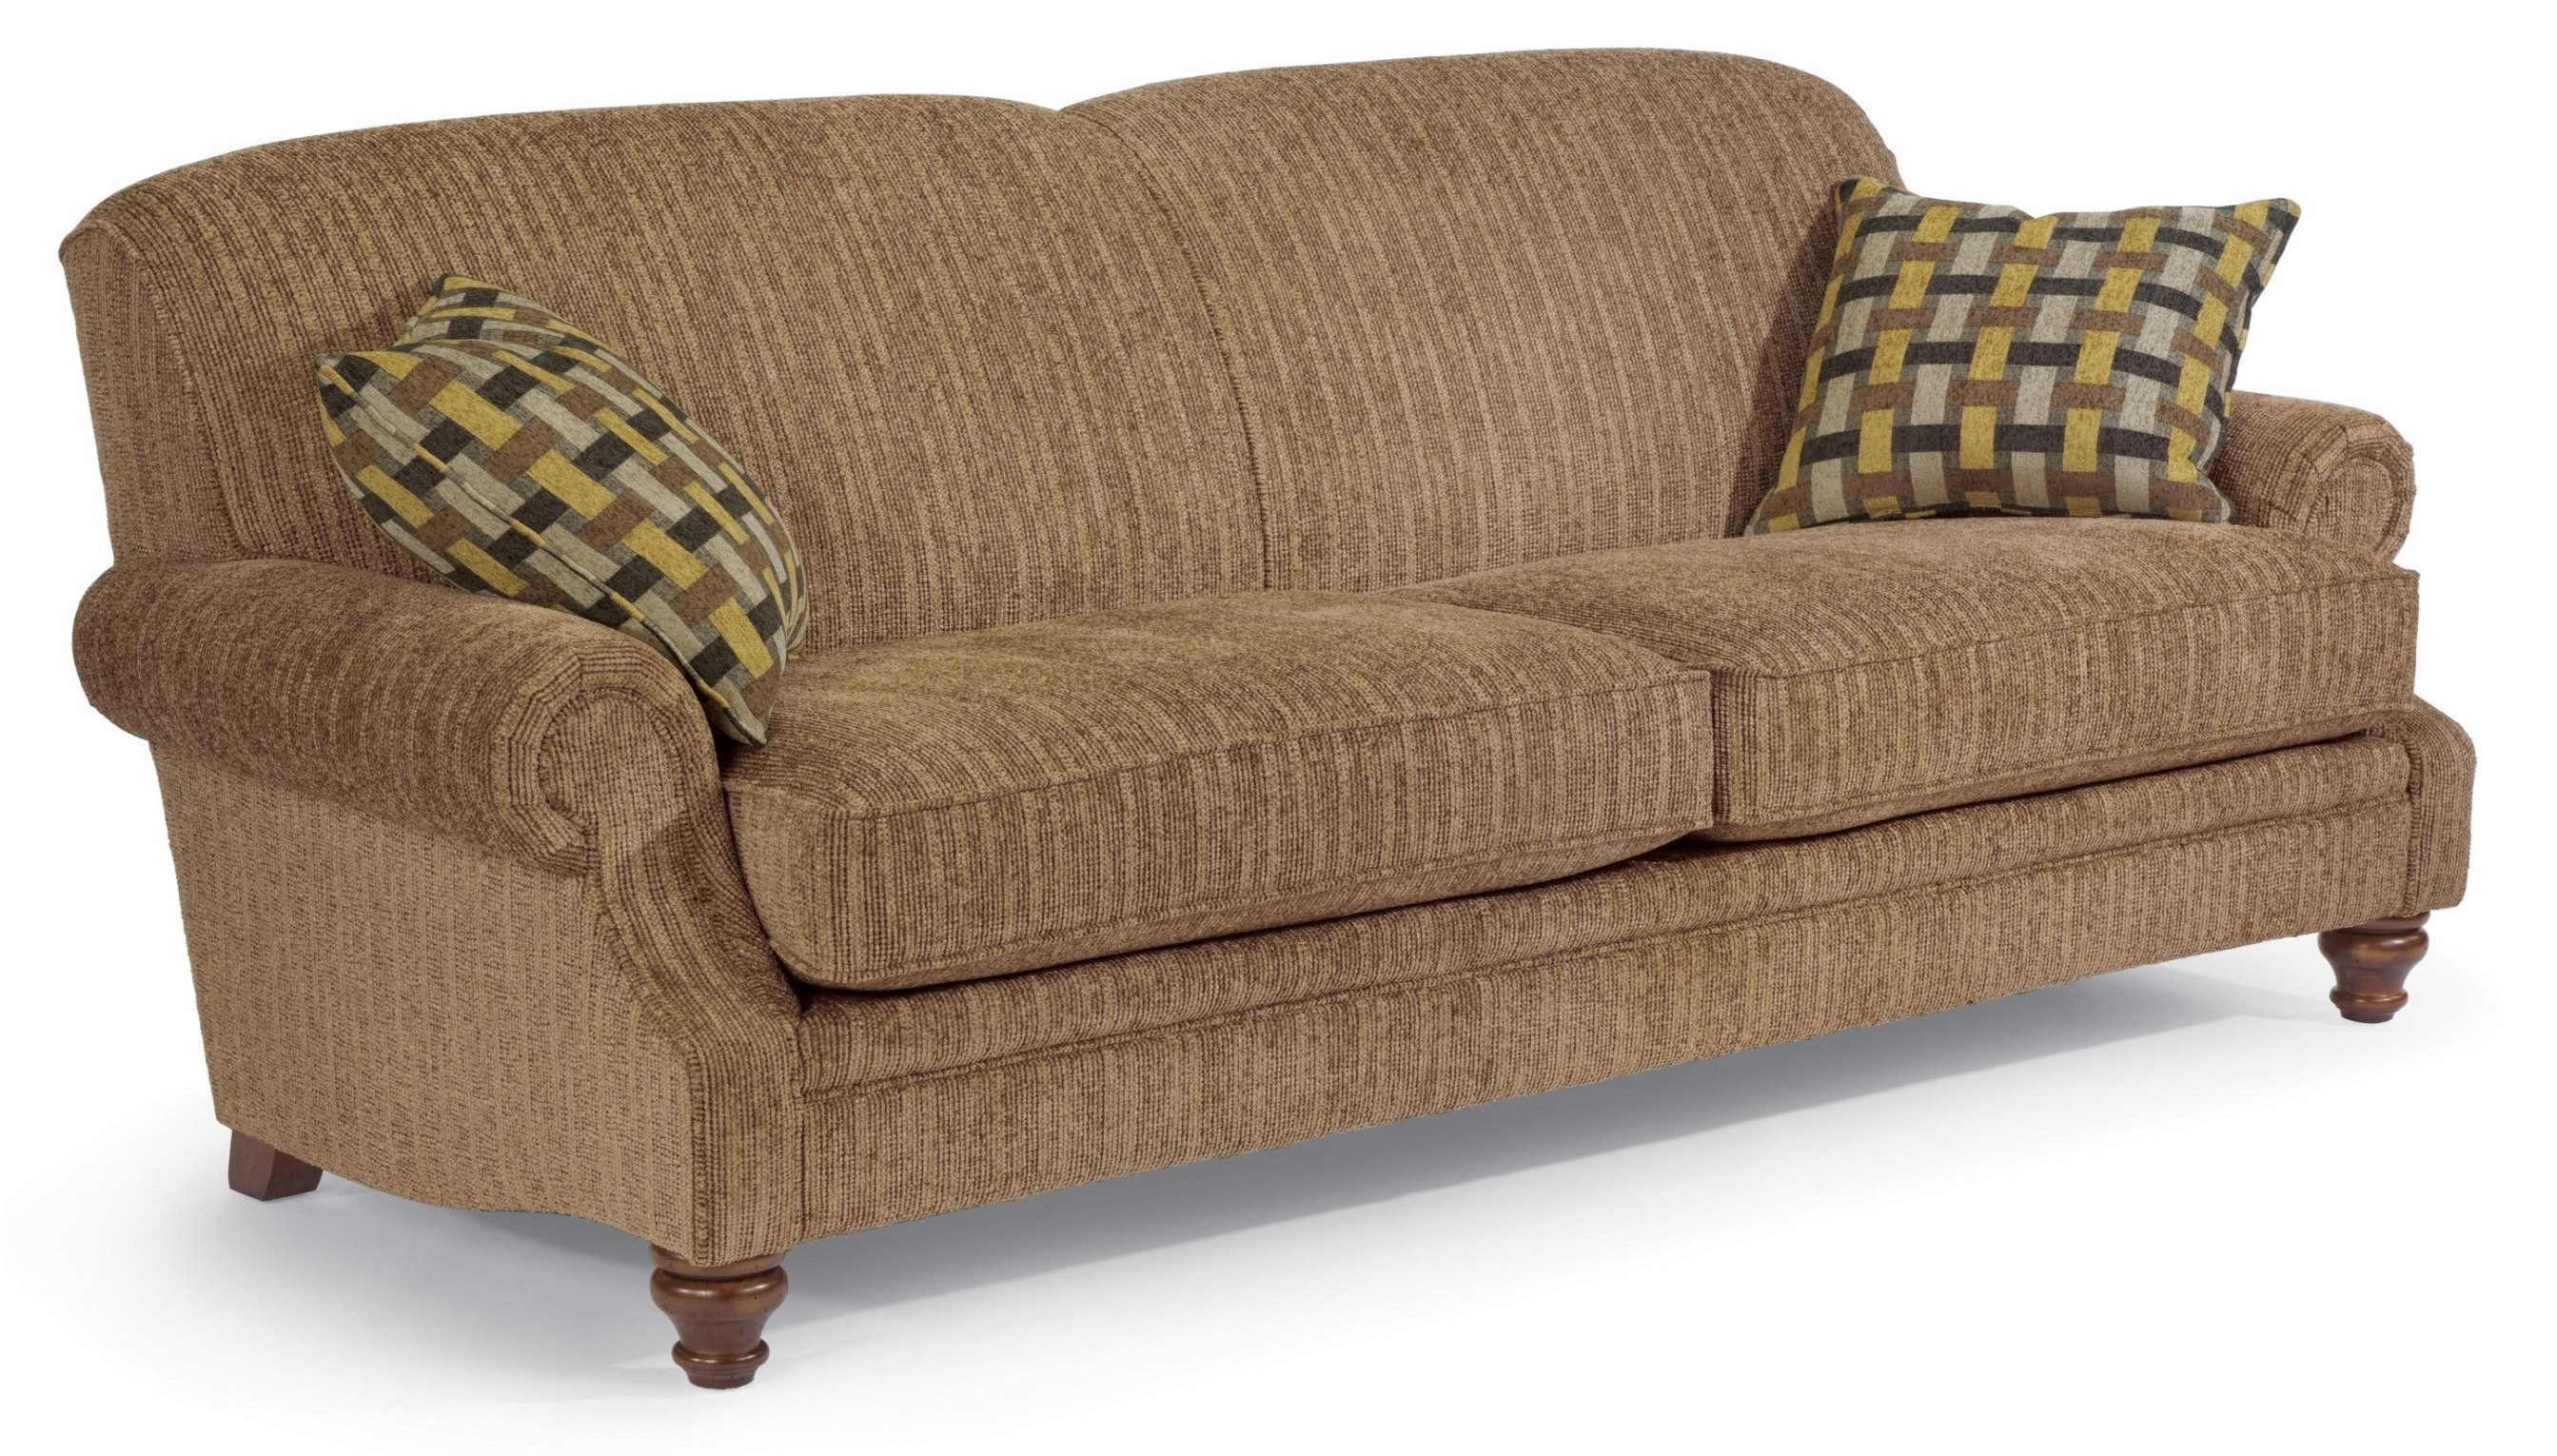 Sofa City Evansville Fantastic sofa sofa City Evansville Good Home Design Simple Under sofa Plan